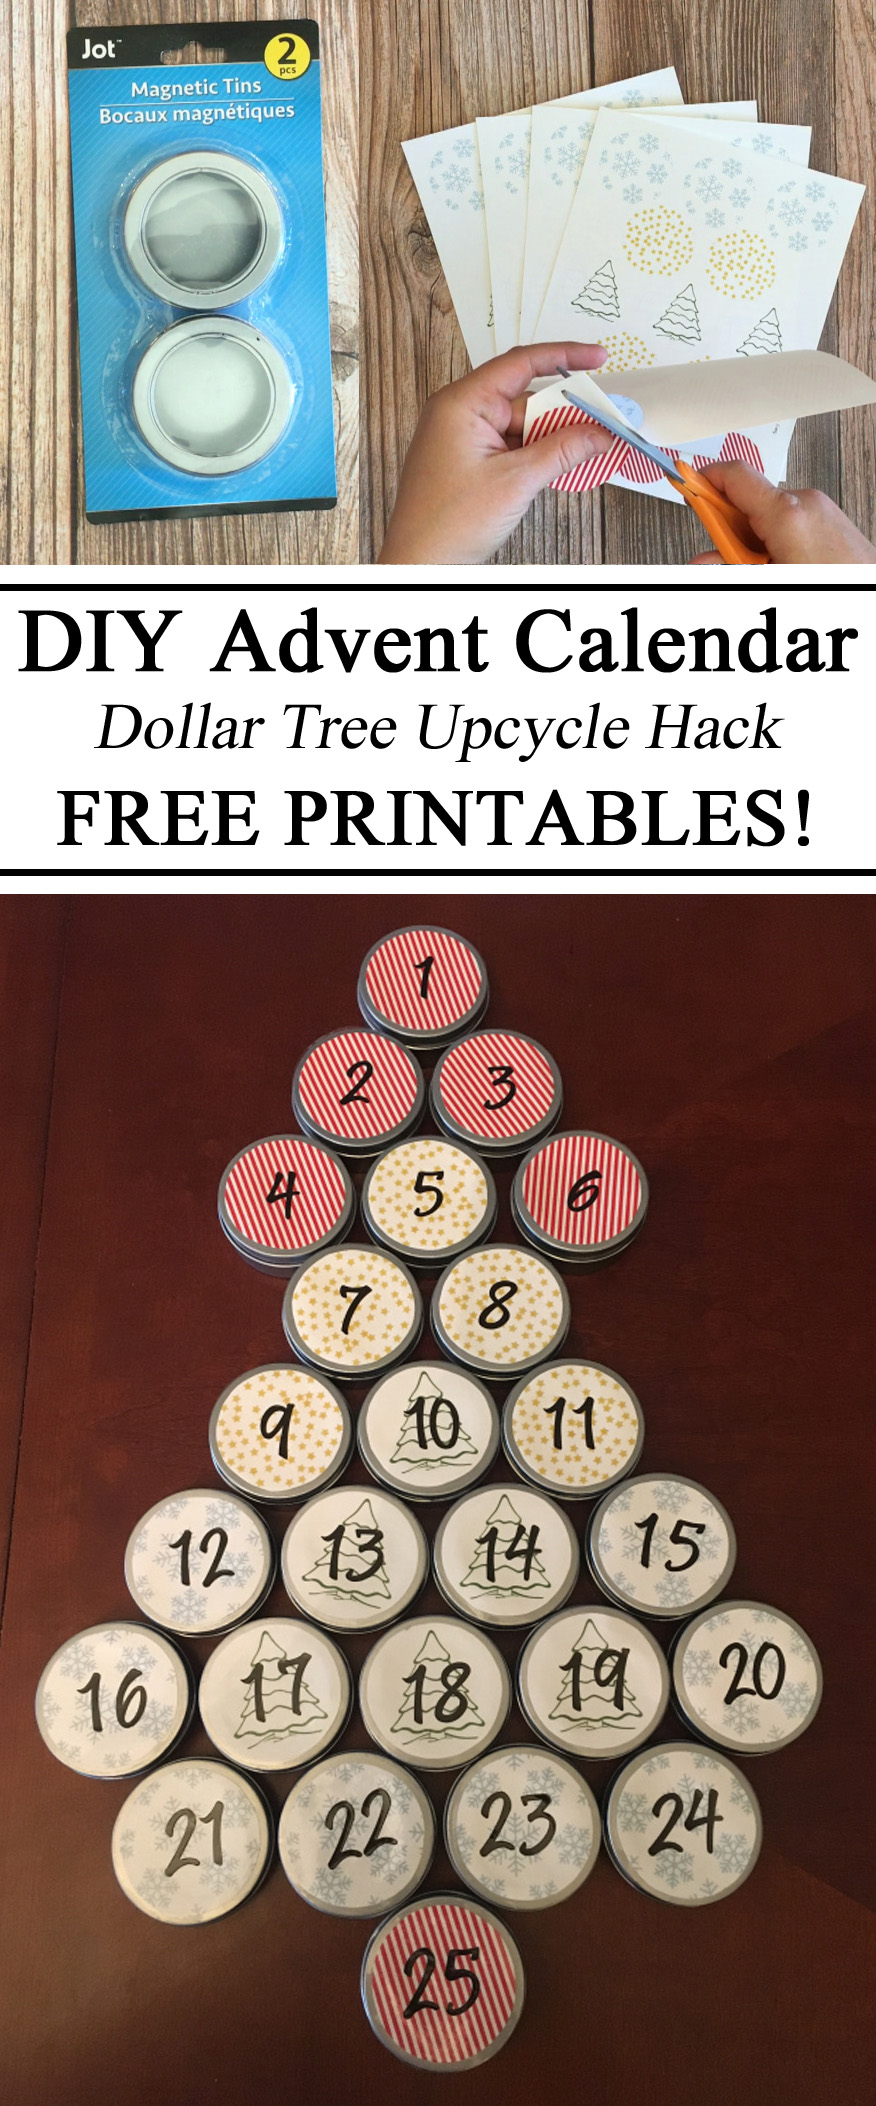 Advent Calendar, Dollar Tree Hack, Upcycle, DIY, Reusable, Sustainable, Free Printables, Free Downloads, Magnetic, Christmas Activity, Montessori, Parent Resources, Waldorf, Counting, Learning, 1-25, Holiday Activities, Preschool, Traditions, Kindergarten, Totschool, Homeschooling, Homeschool